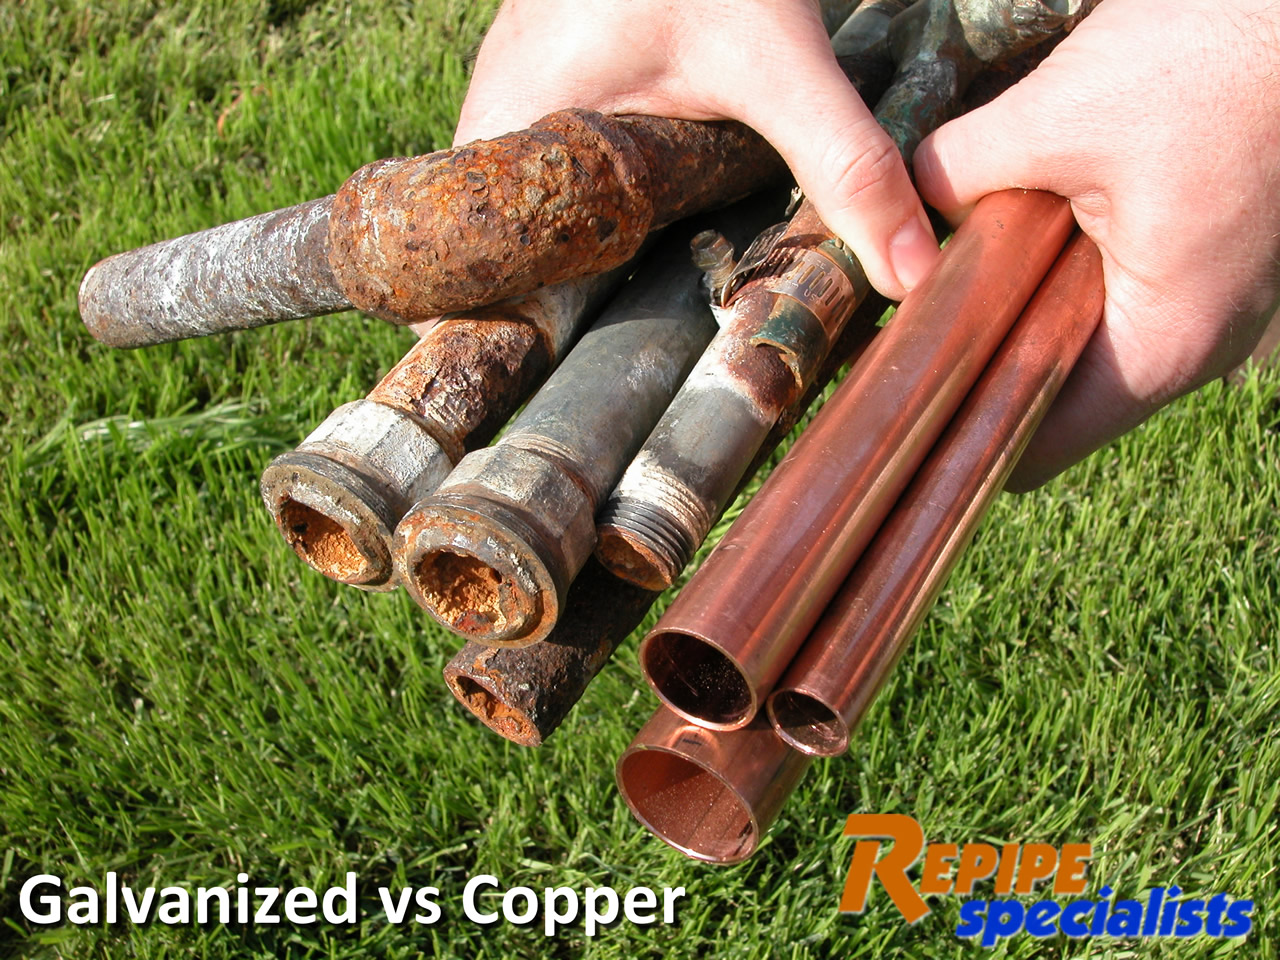 Galvanized pipe corrosion for Pex vs copper water pipes